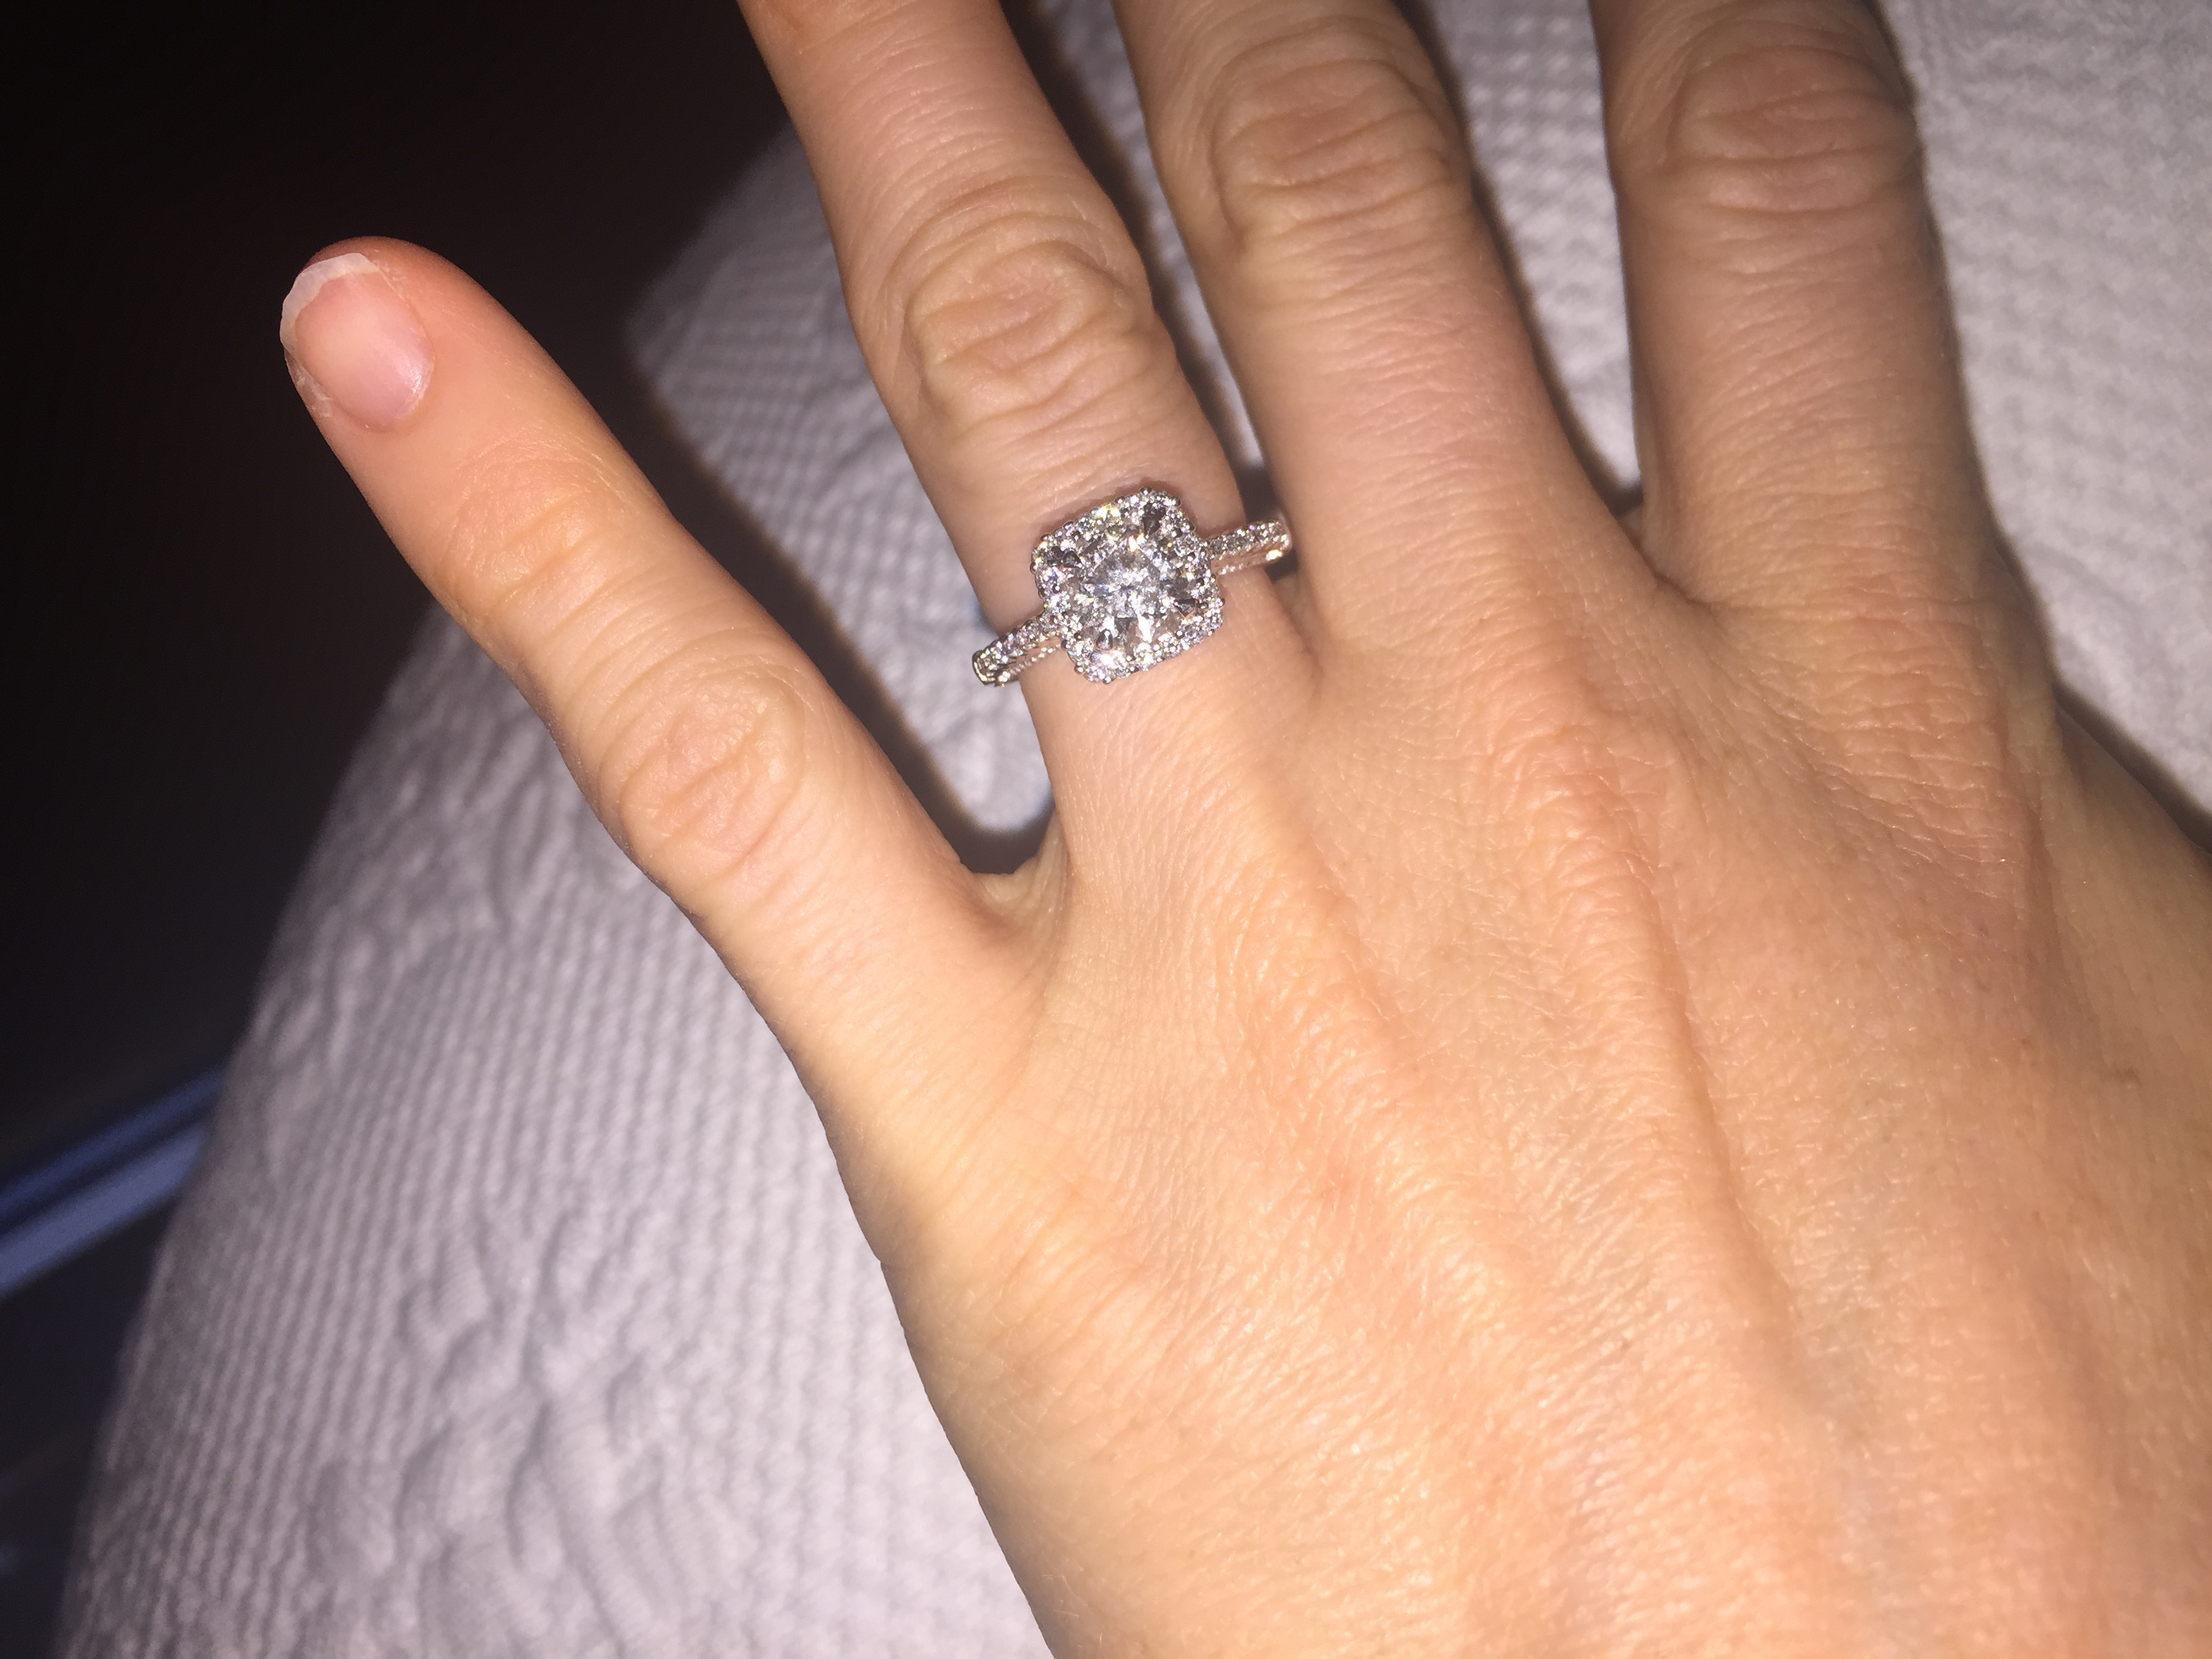 This is an image of Verragio Engagement Ring with Wedding Band. Check out the very beautifully intricate setting Verragio is known for!